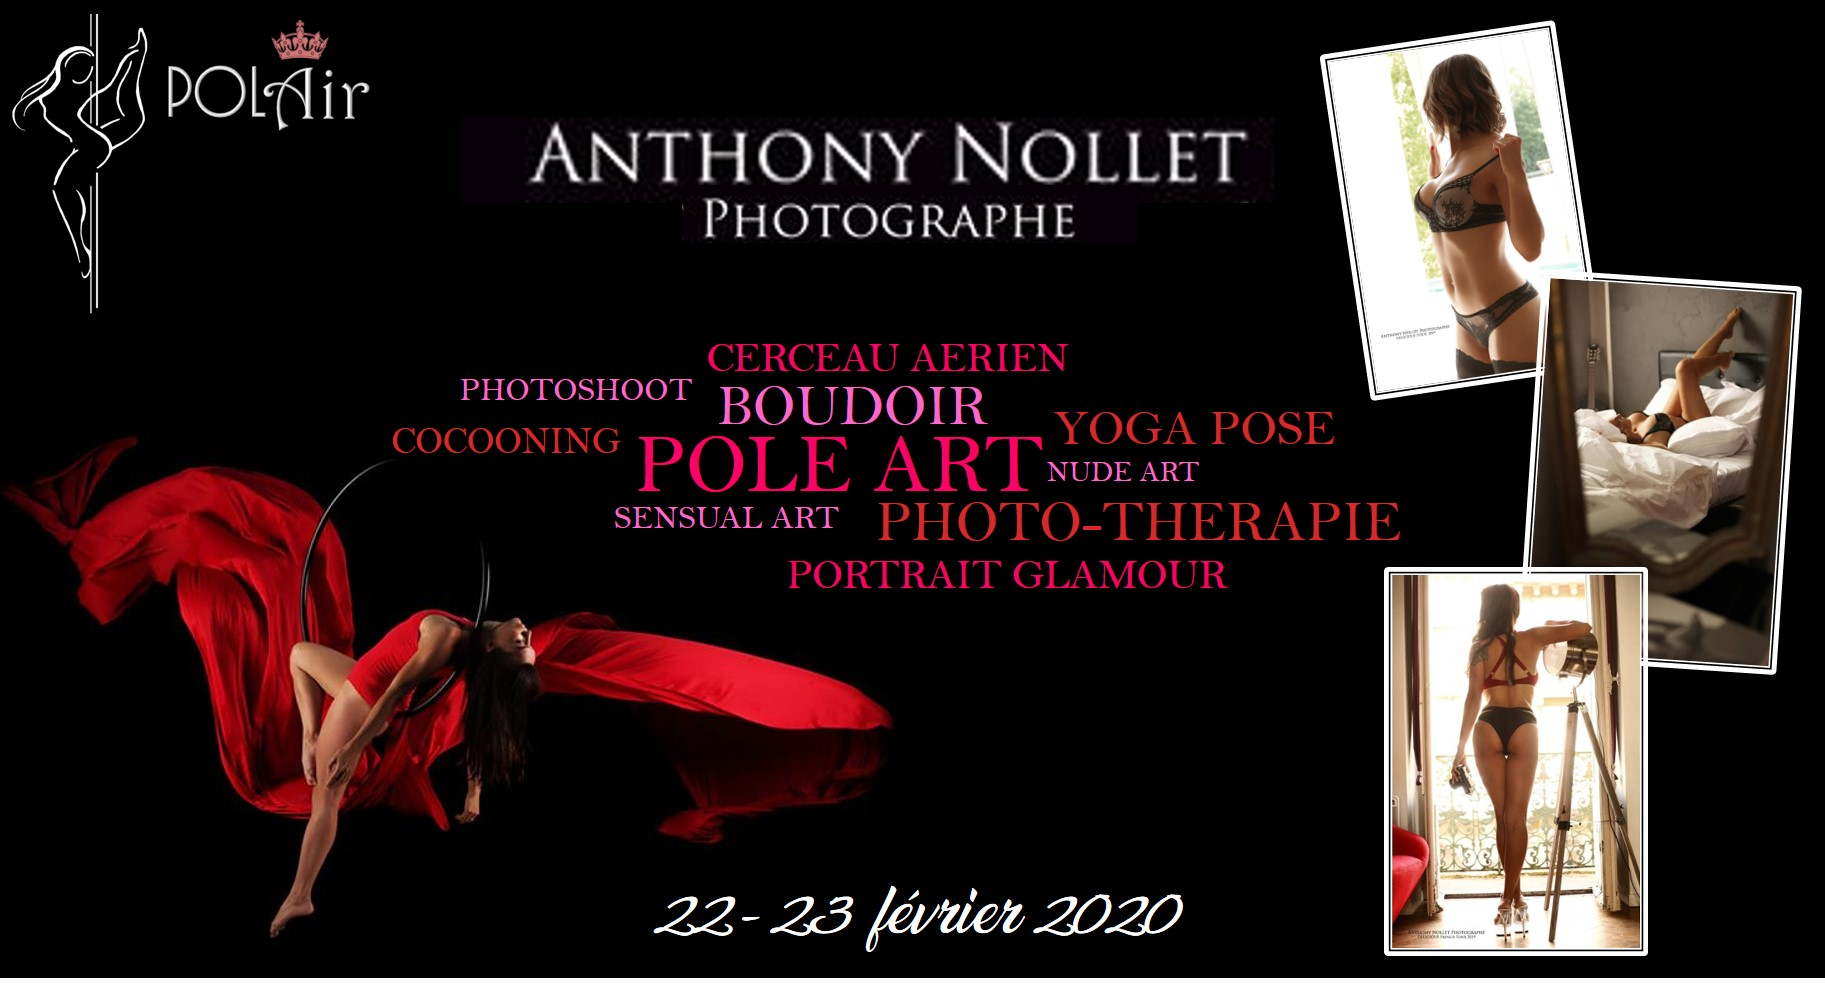 Photoshoot Anthony Nollet